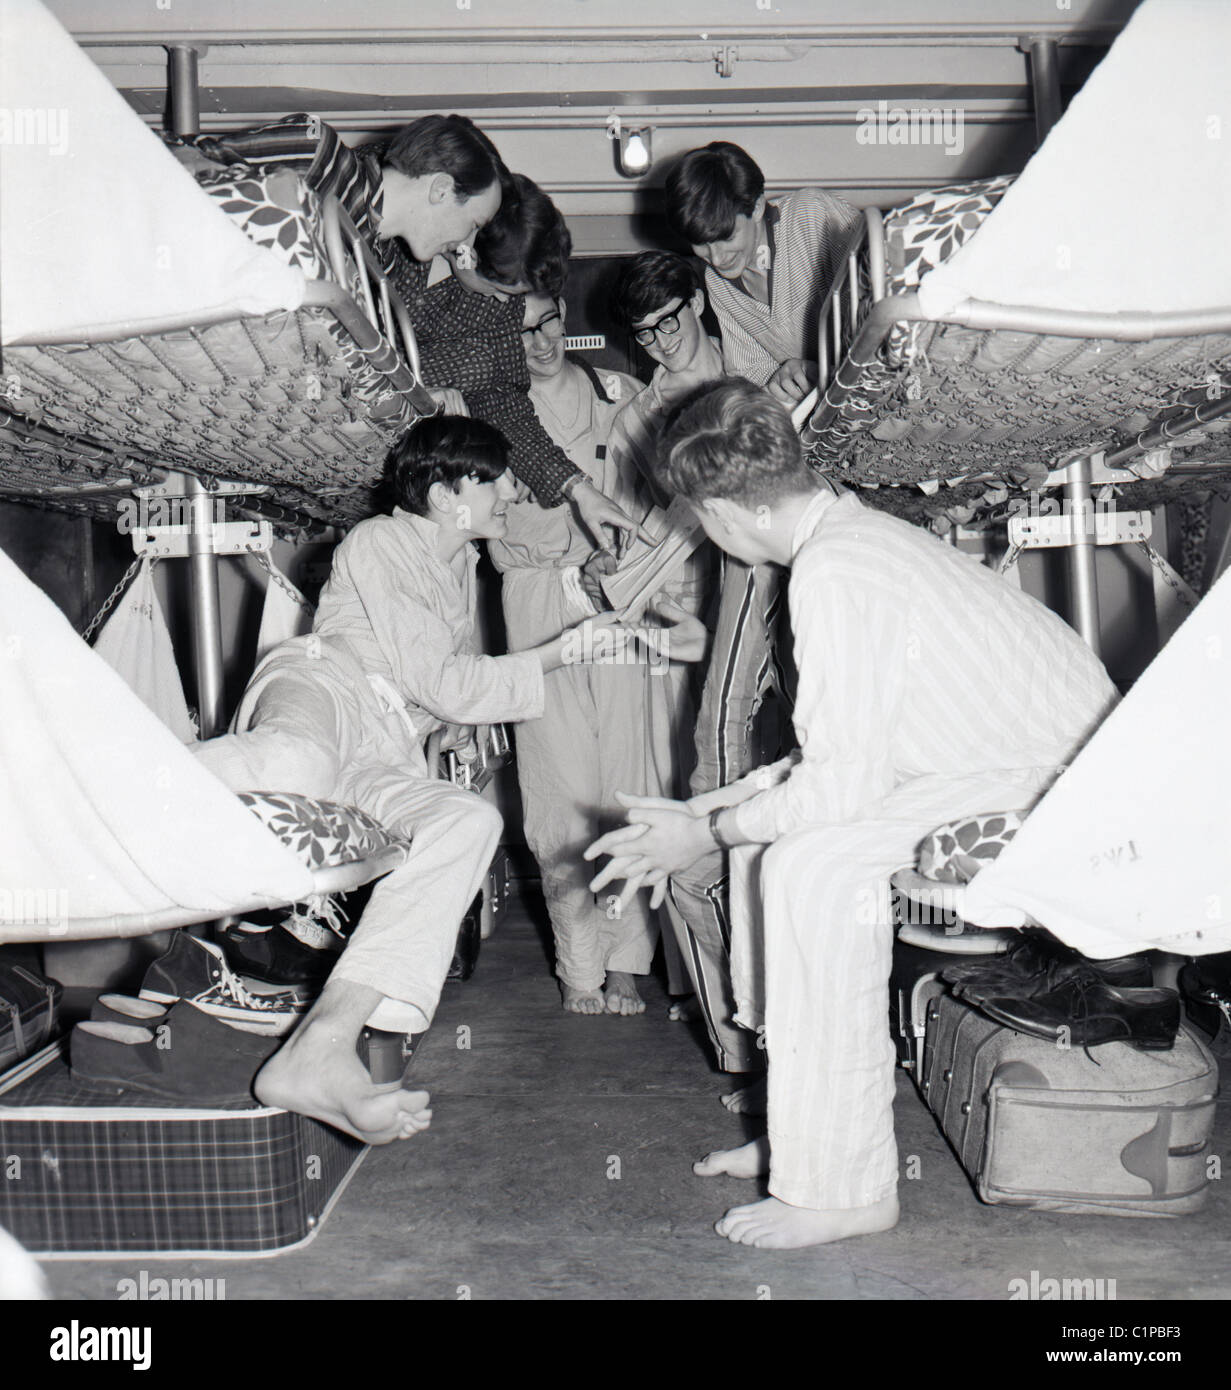 At Sea 1950s Young Adult Boys In Pyjamas On Bunk Beds In Their